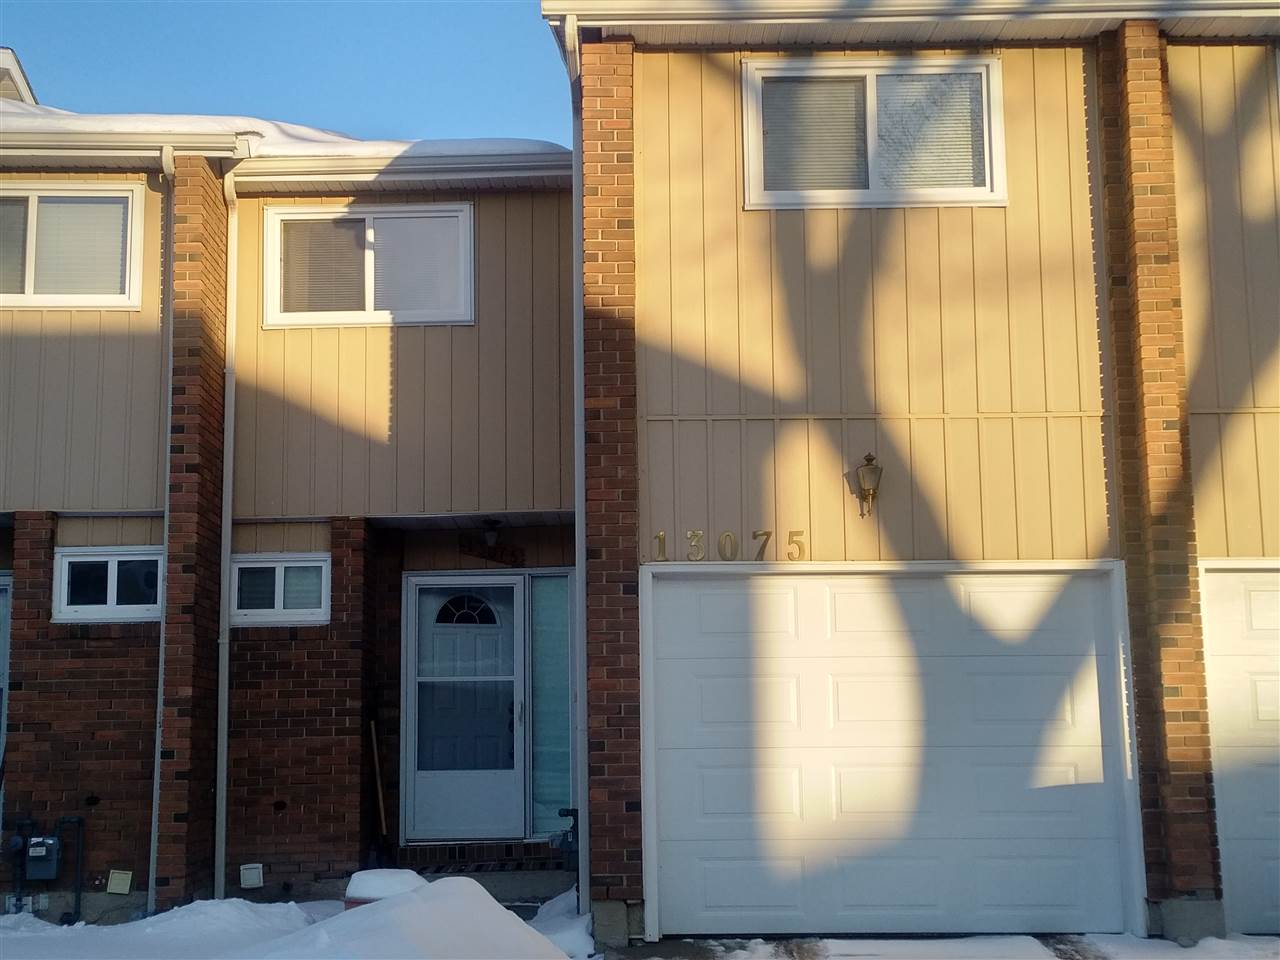 13075 34 Street NW, 4 bed, 1.1 bath, at $209,000